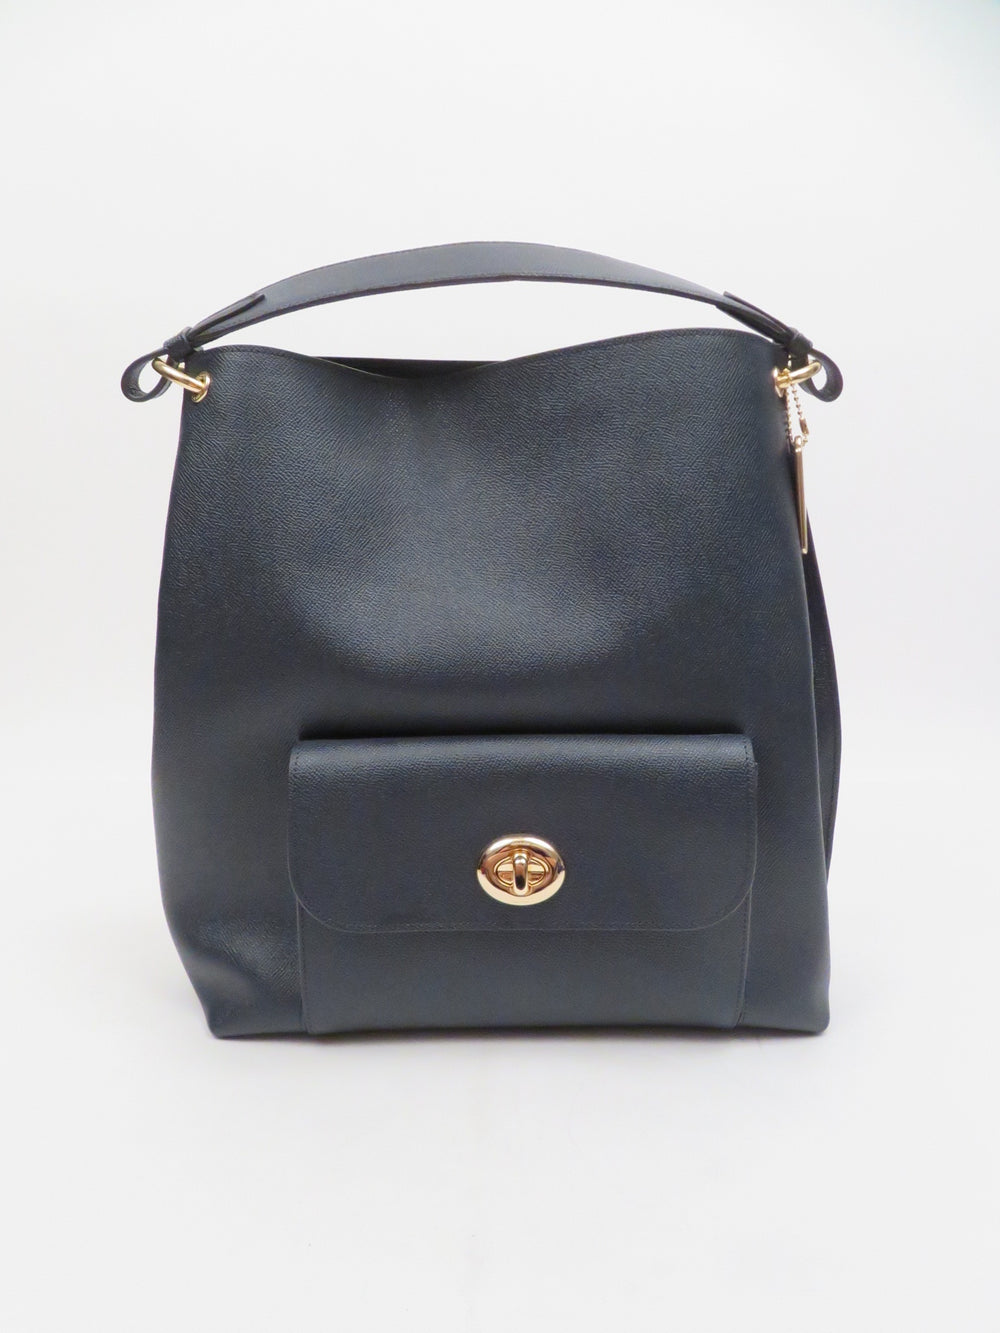 coach black leather tote. features small exterior pouch and large interior main compartment, handle.